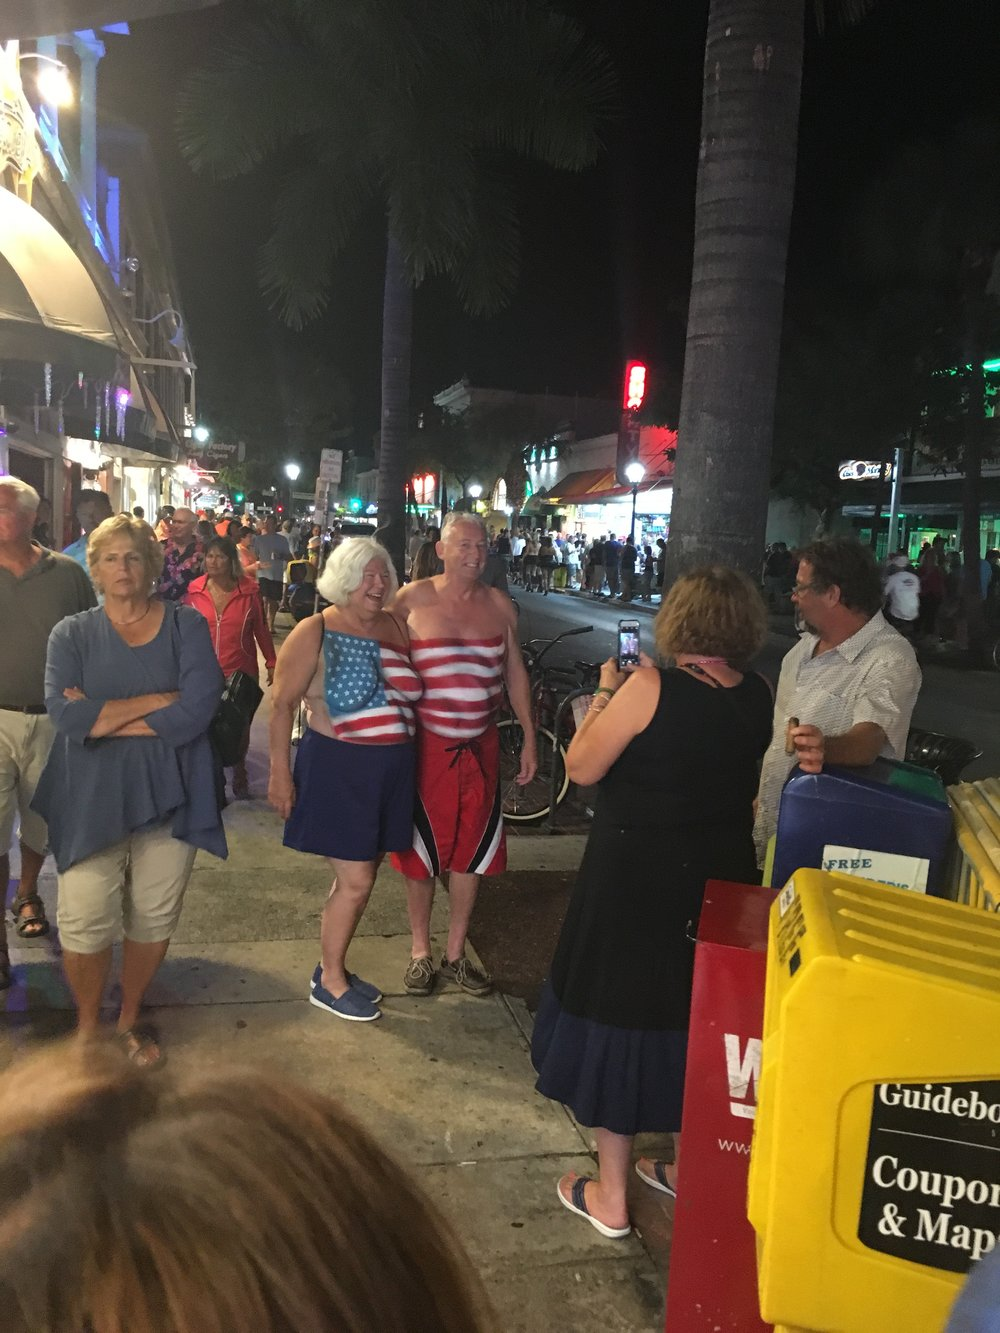 fantasy fest 2016 key west crowd shots pictures body paint nudity american flag couple patriotic